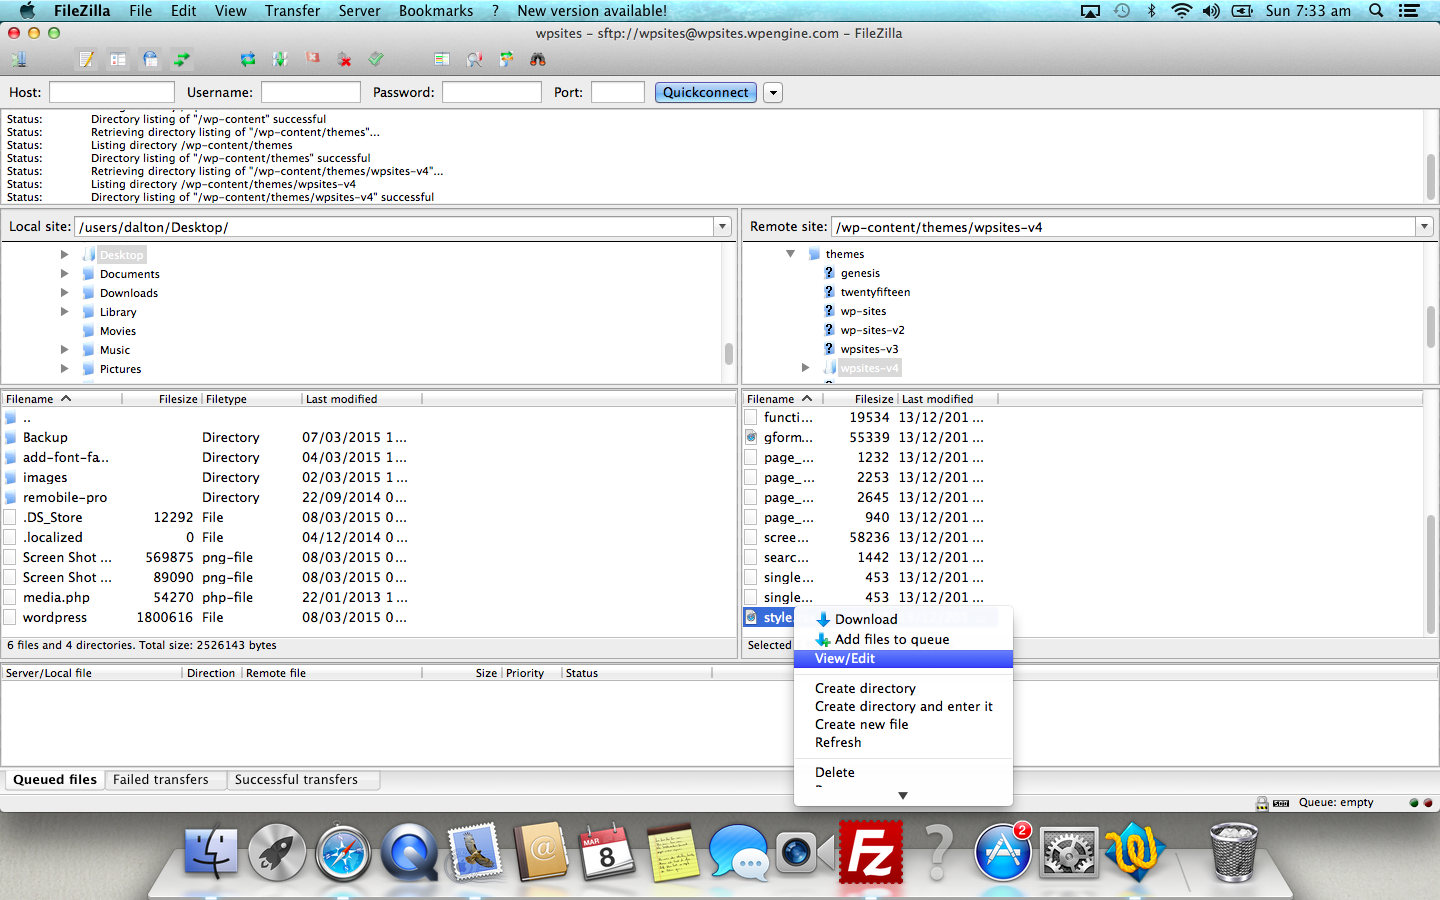 Set Application To Open File Types in Filezilla Using Mac.